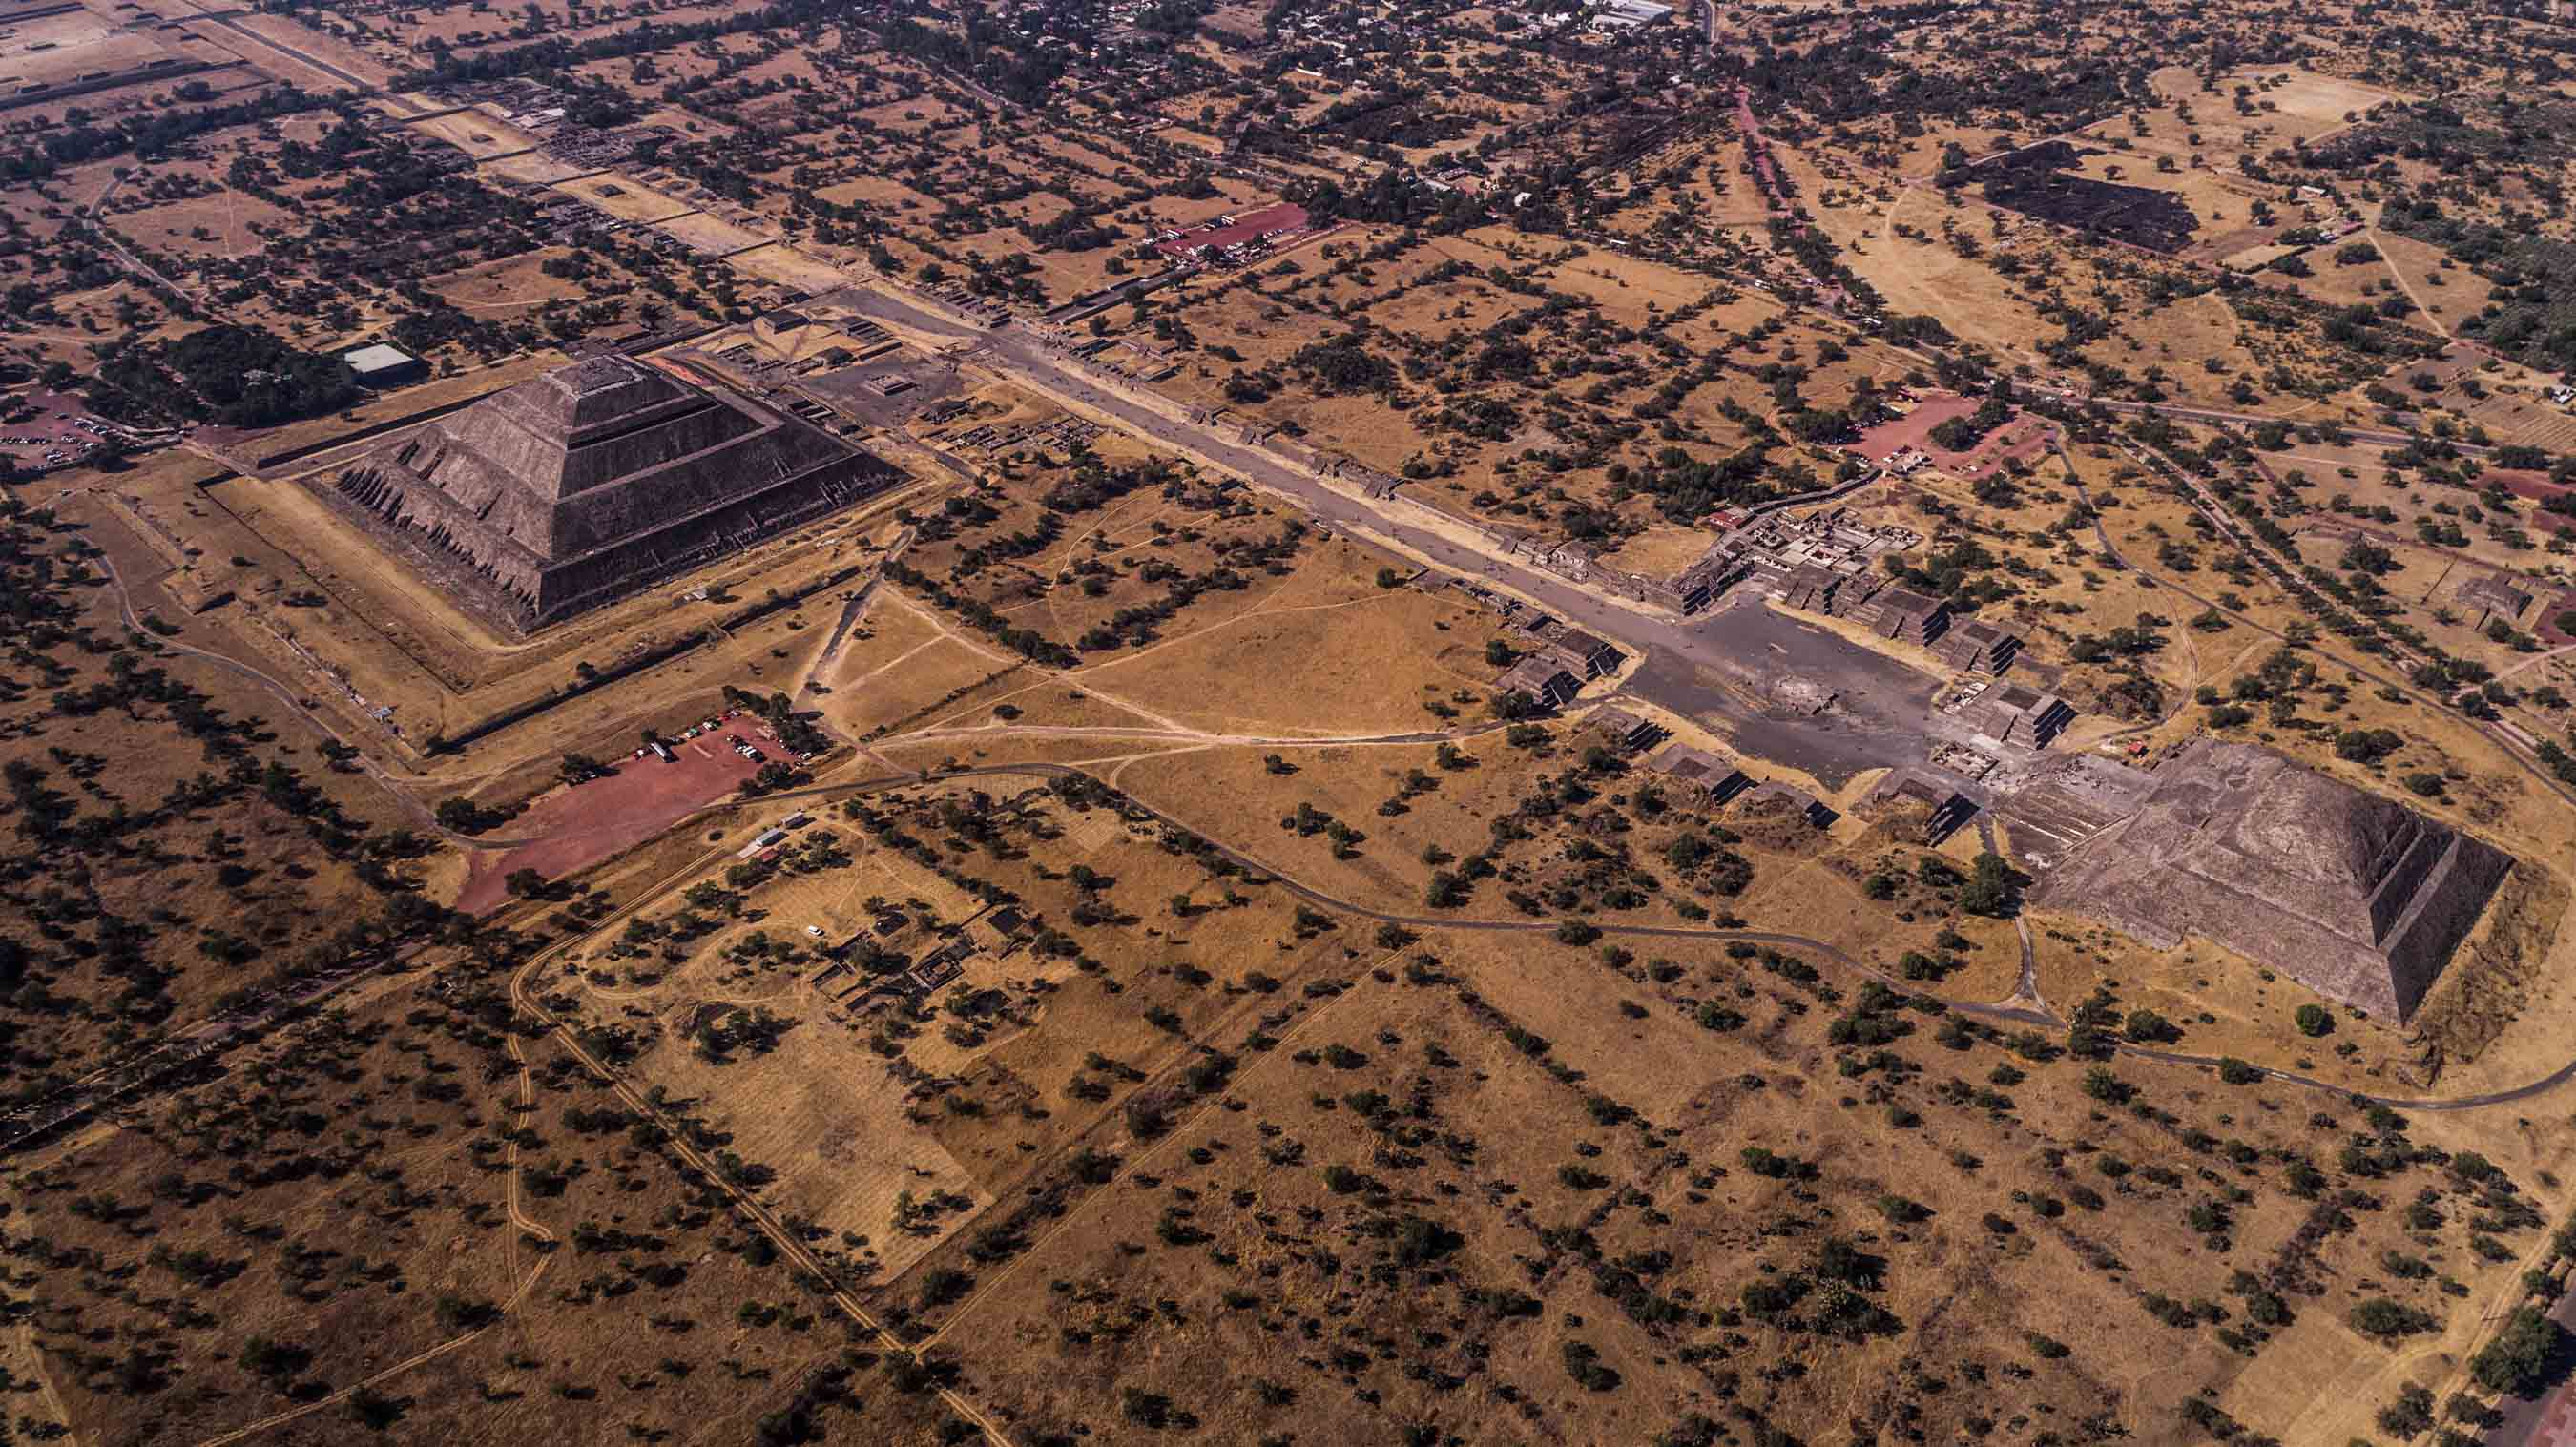 Teotihuacan Pyramids from Above - Enrico Pescantini Photography